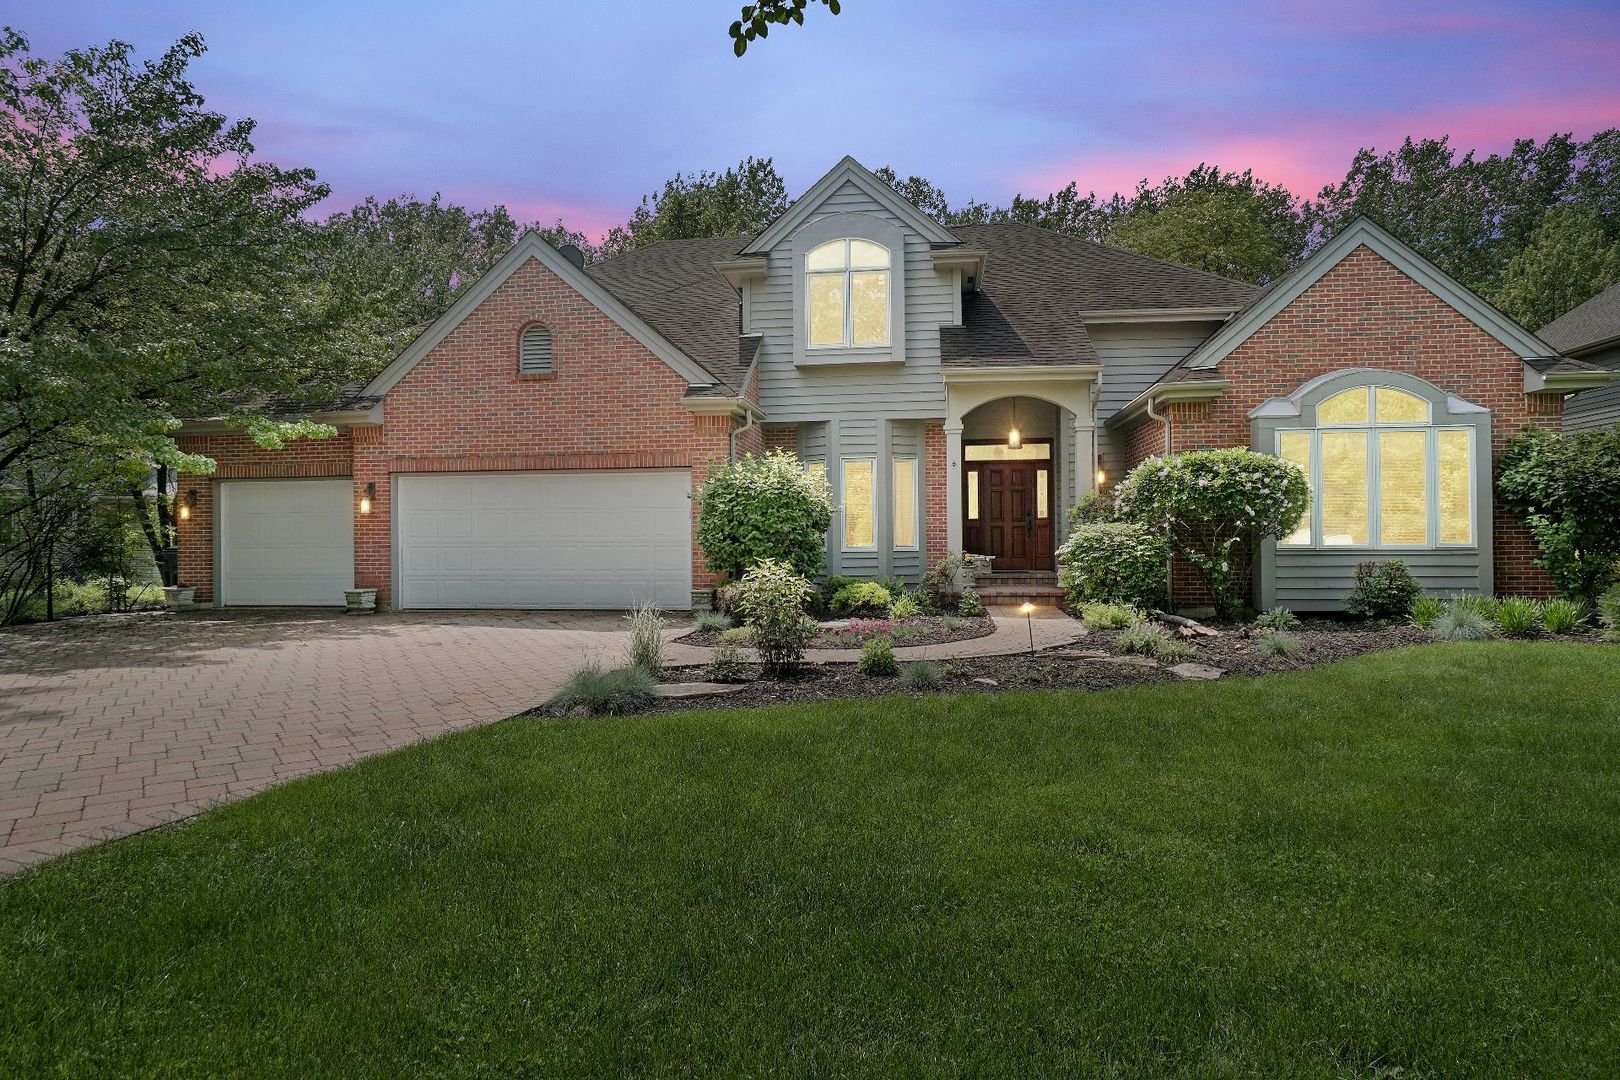 1440 Forest, Glenview, Illinois, 60025